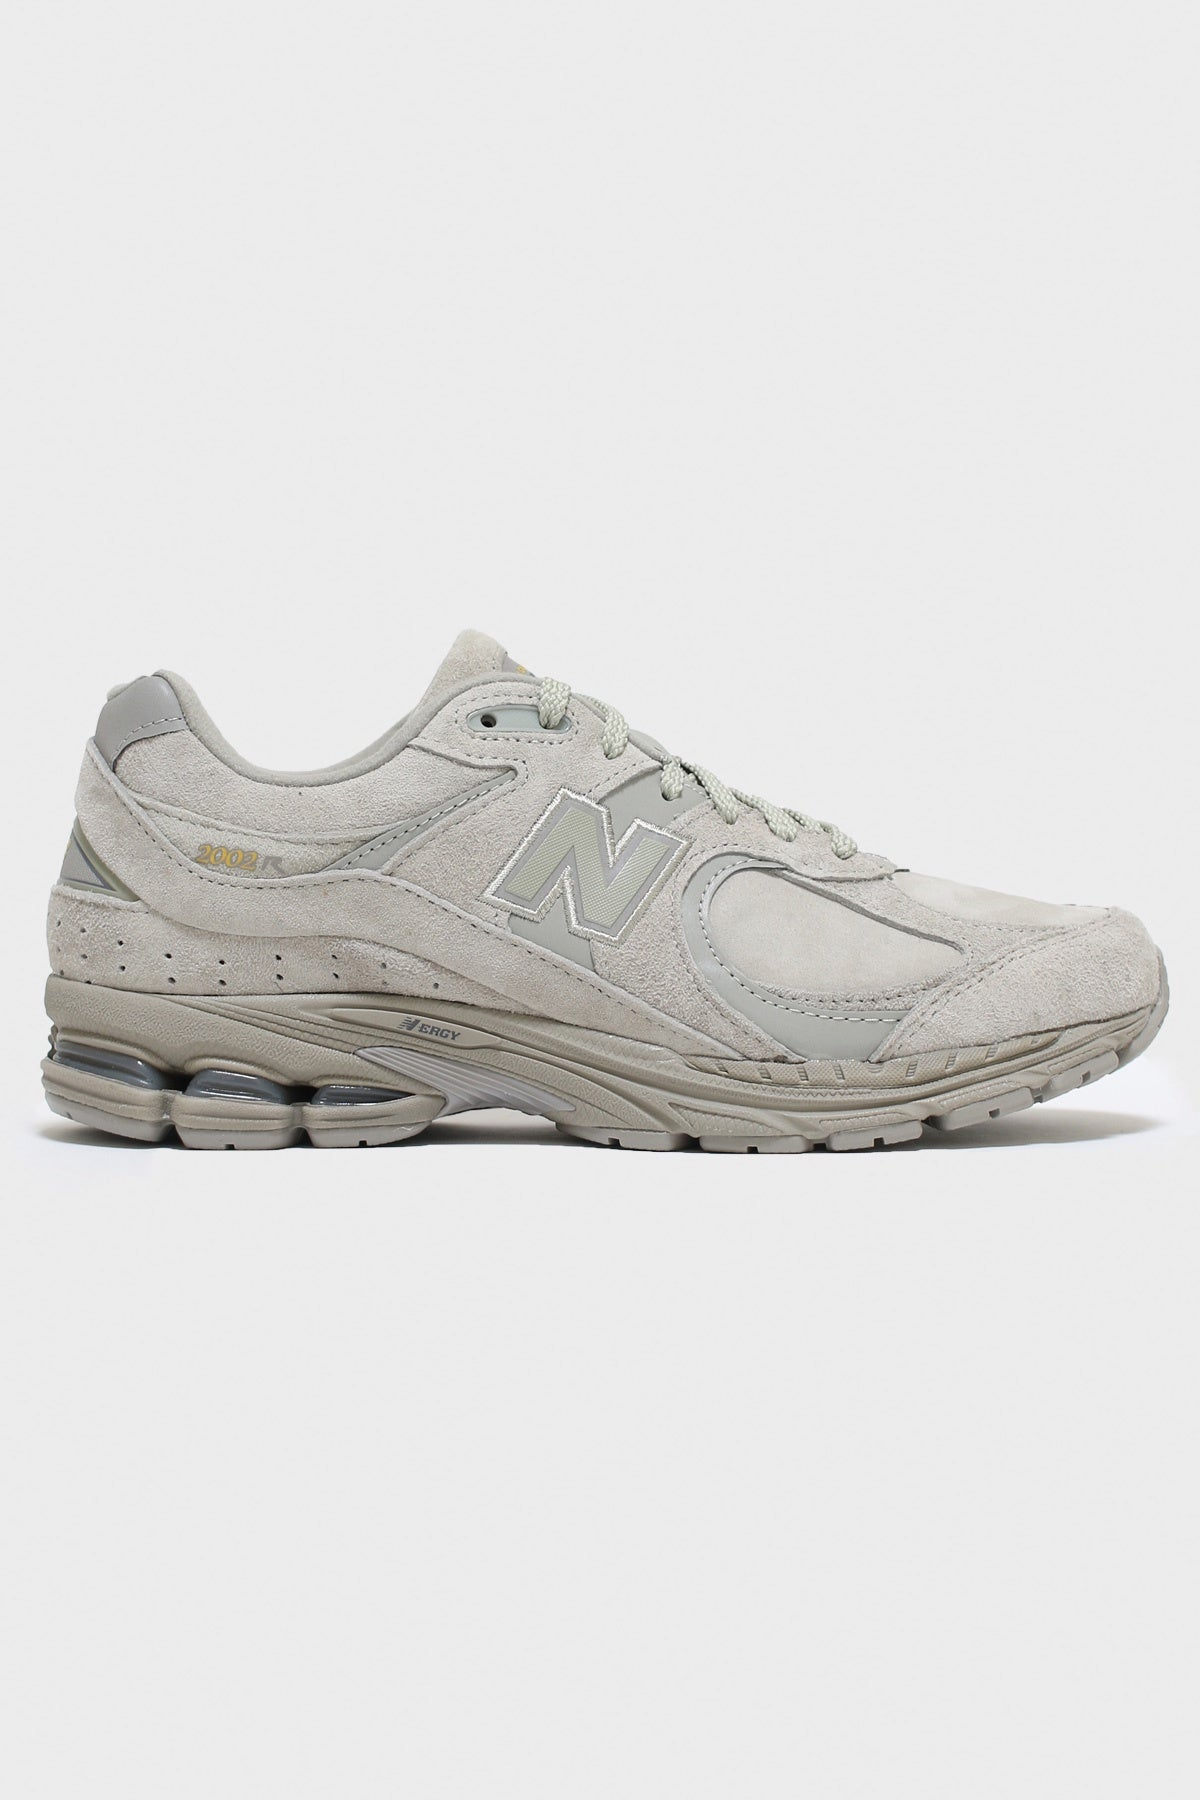 New Balance - 2002R - Incense/Deep Taupe - Canoe Club